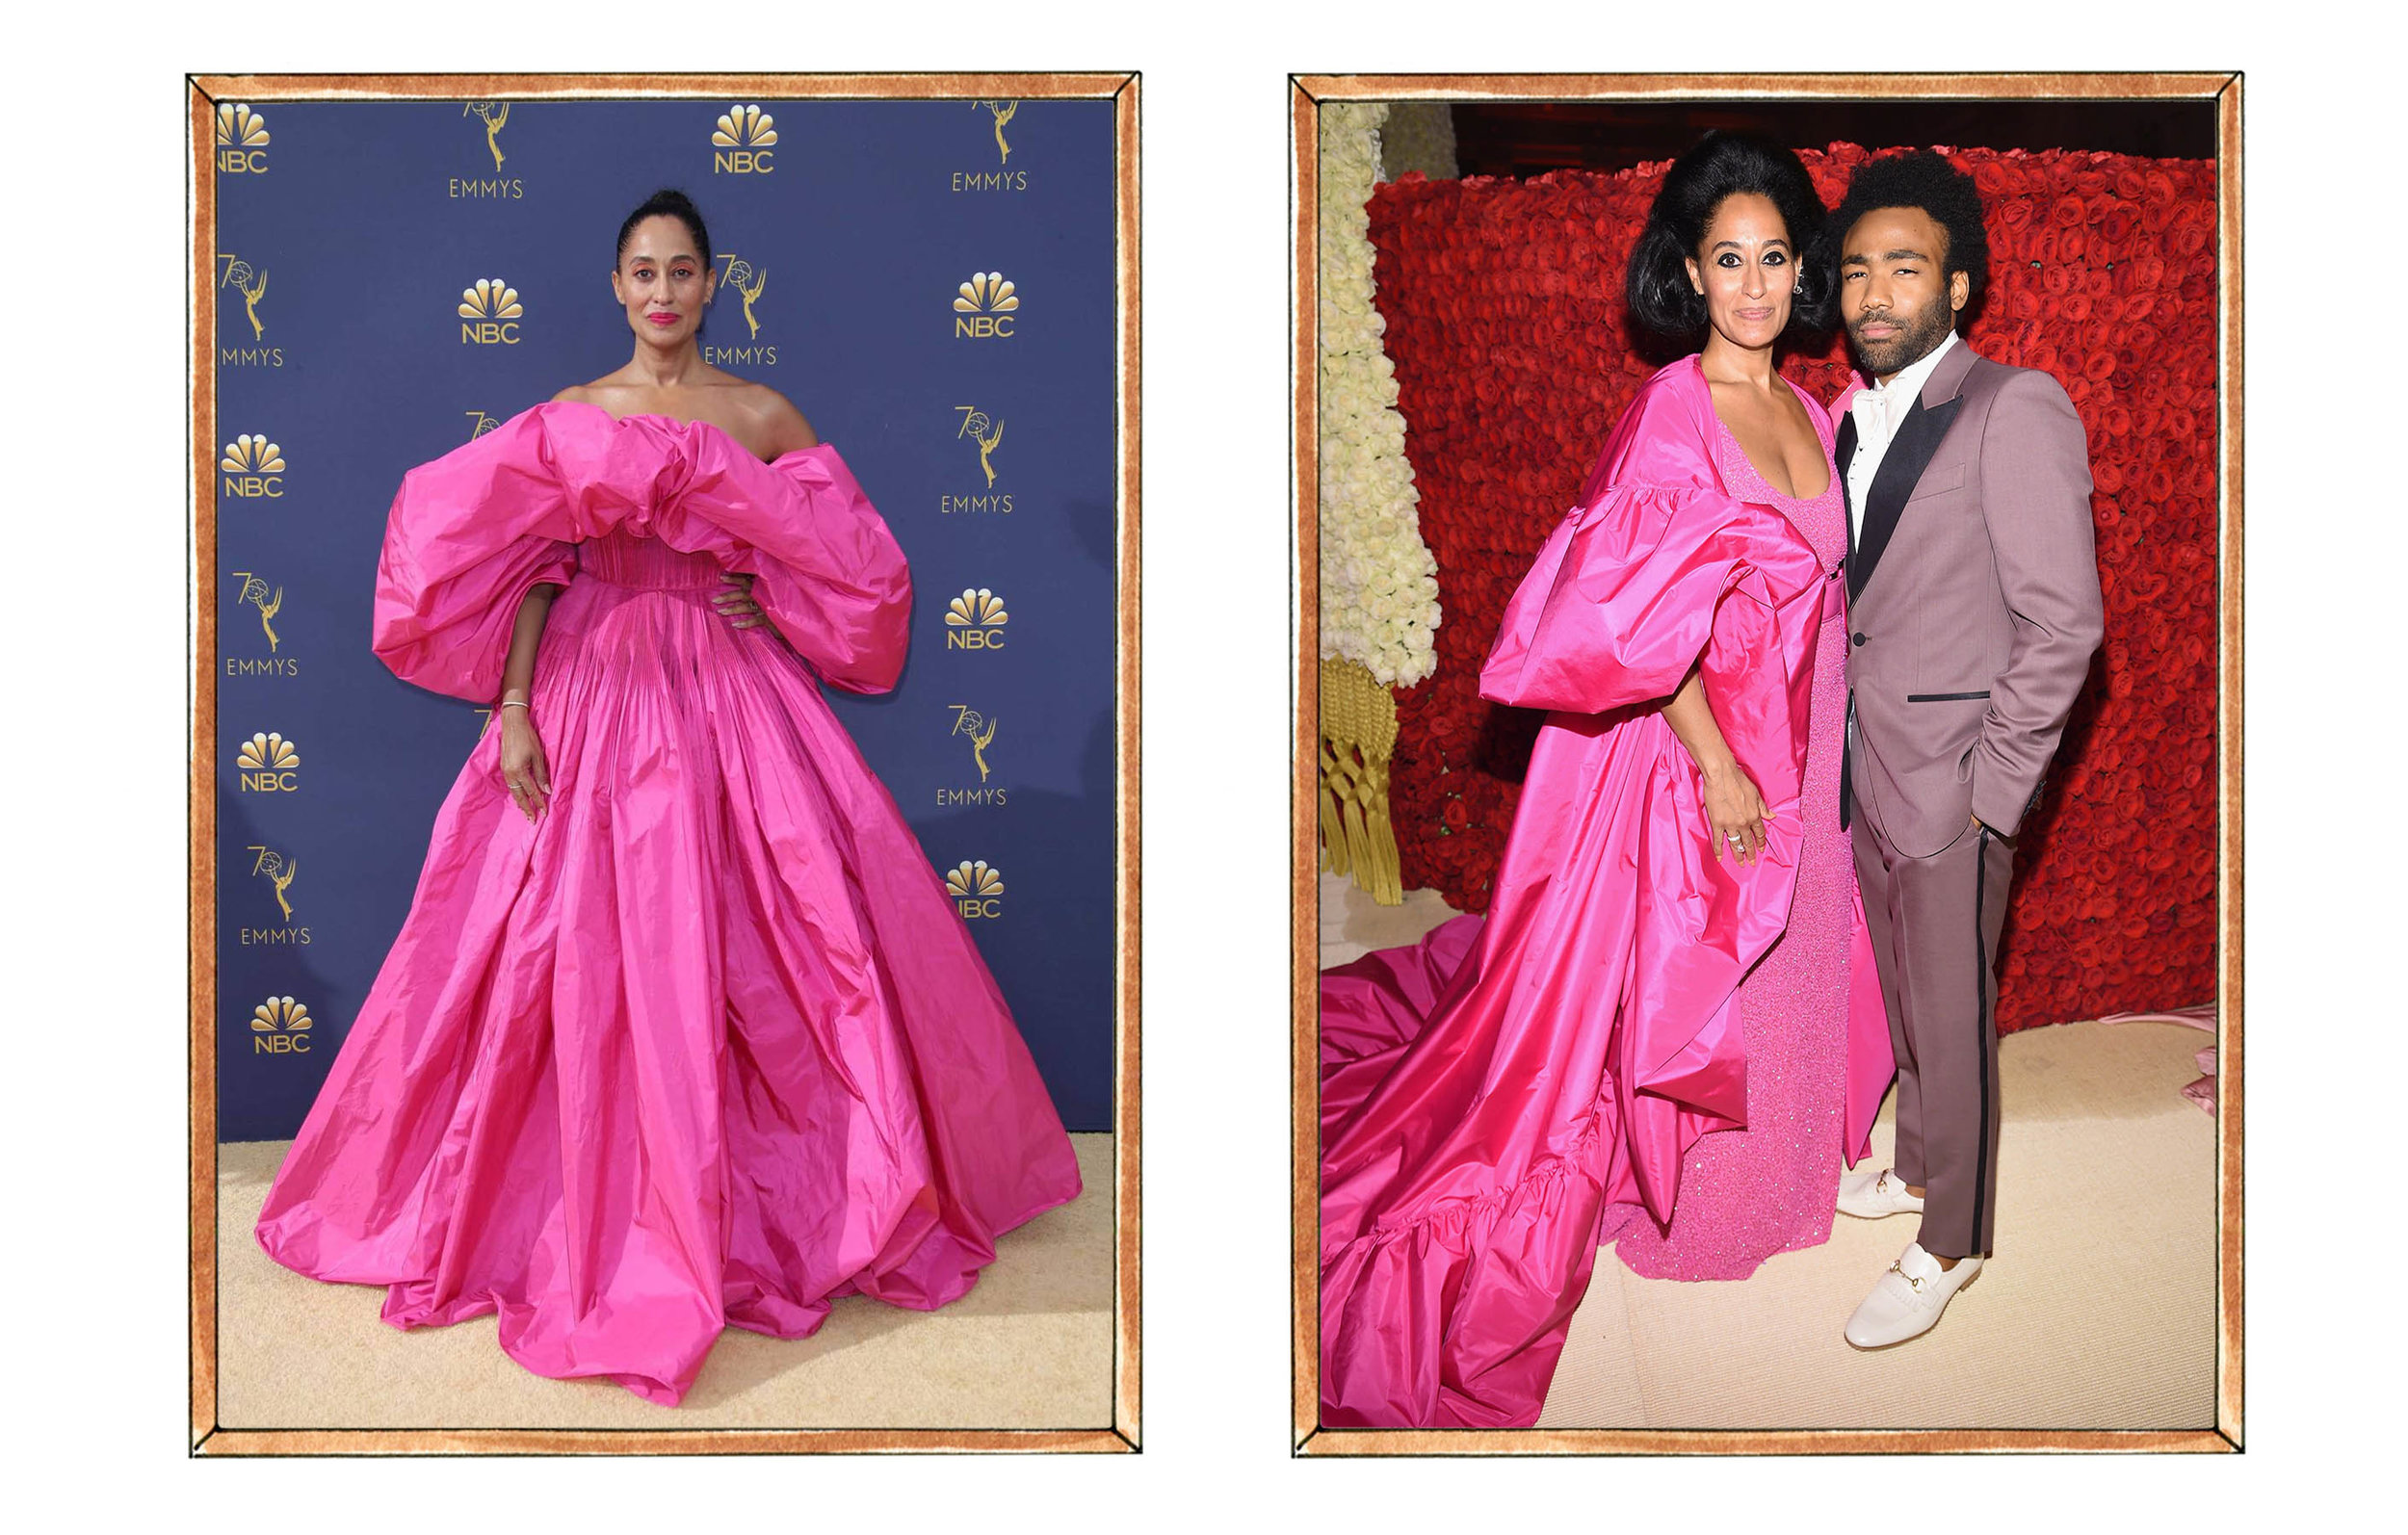 Left: Tracee Ellis Ross in Valentino at the 2018 Emmy's, Right: Tracee Ellis Ross in Michael Kors at the 2018 Met Gala with Donald Glover